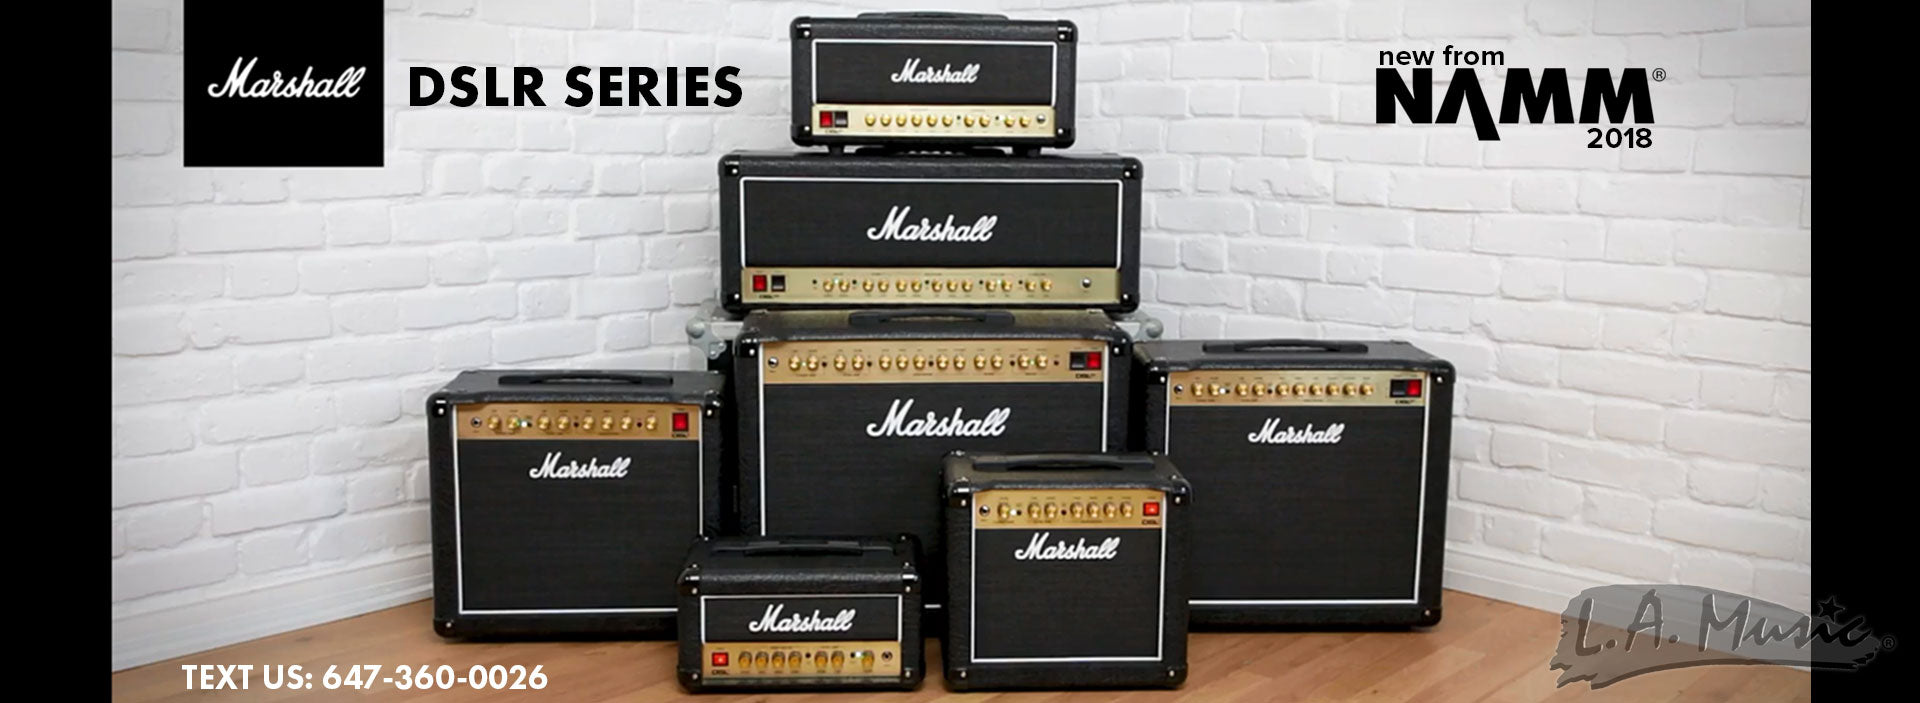 New Marshall DSLR Amps